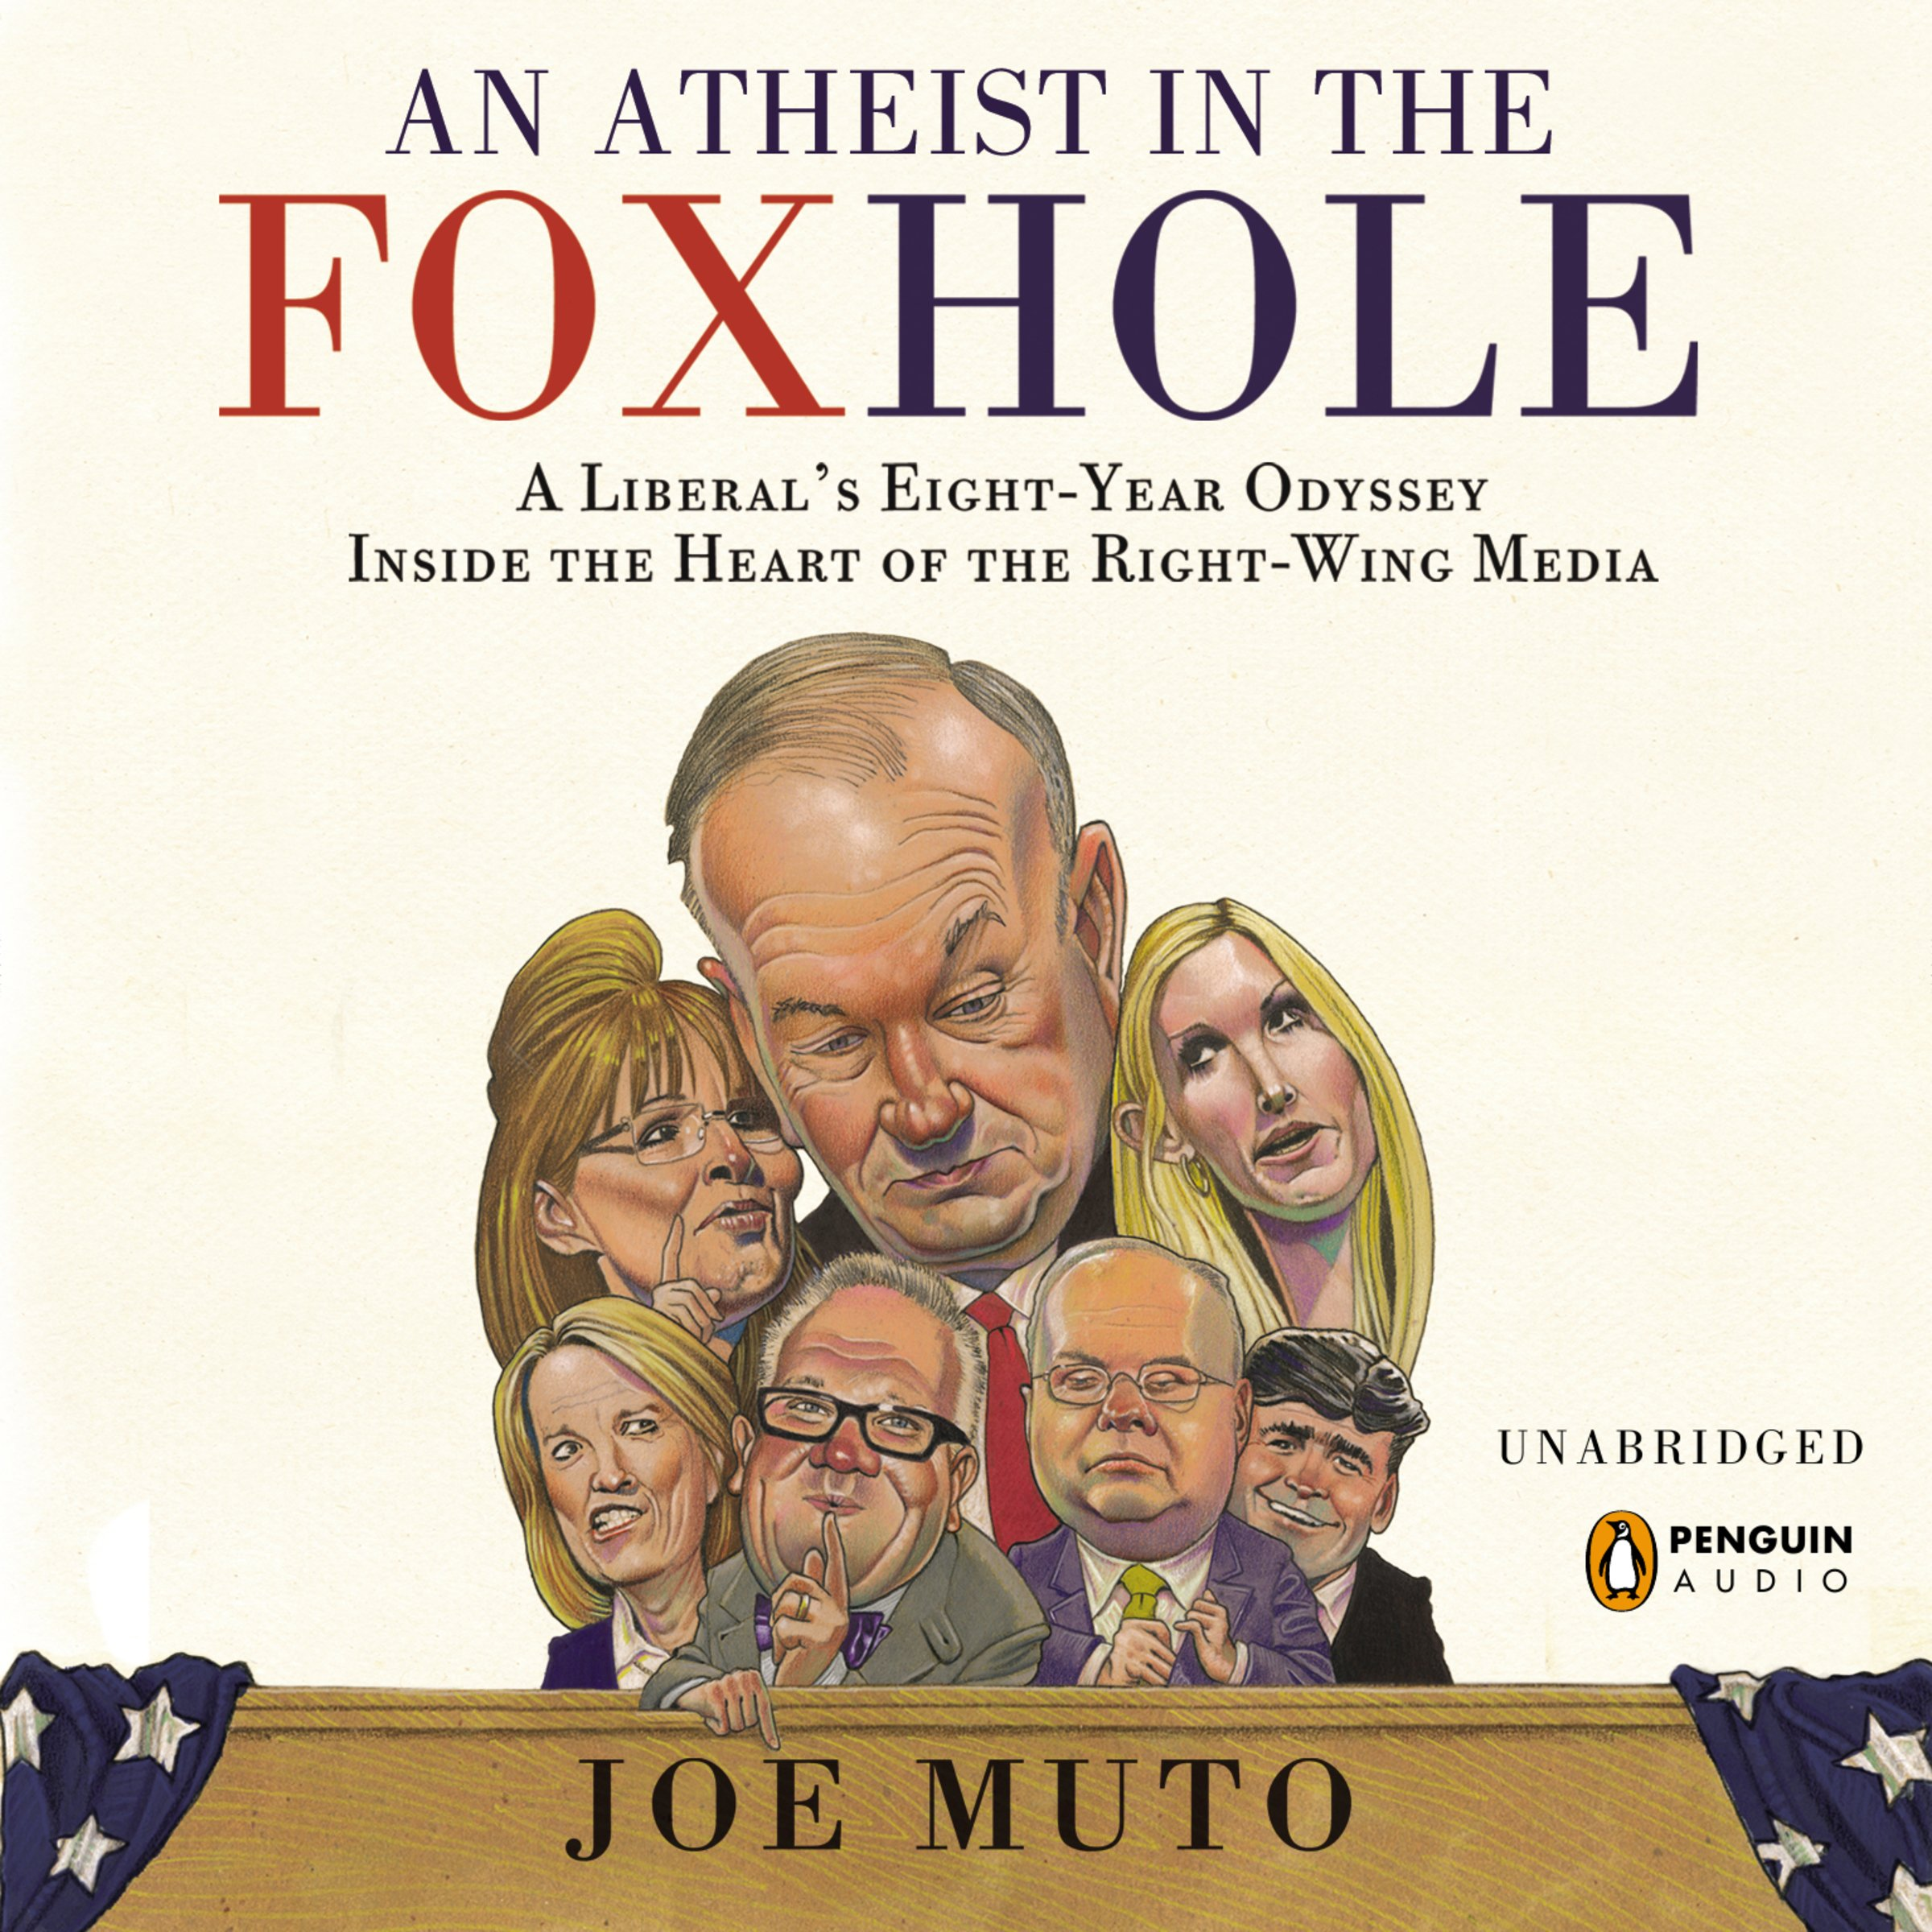 An Atheist in the FOXhole: A Liberal's Eight-Year Odyssey into the Heart of the Right-Wing Media